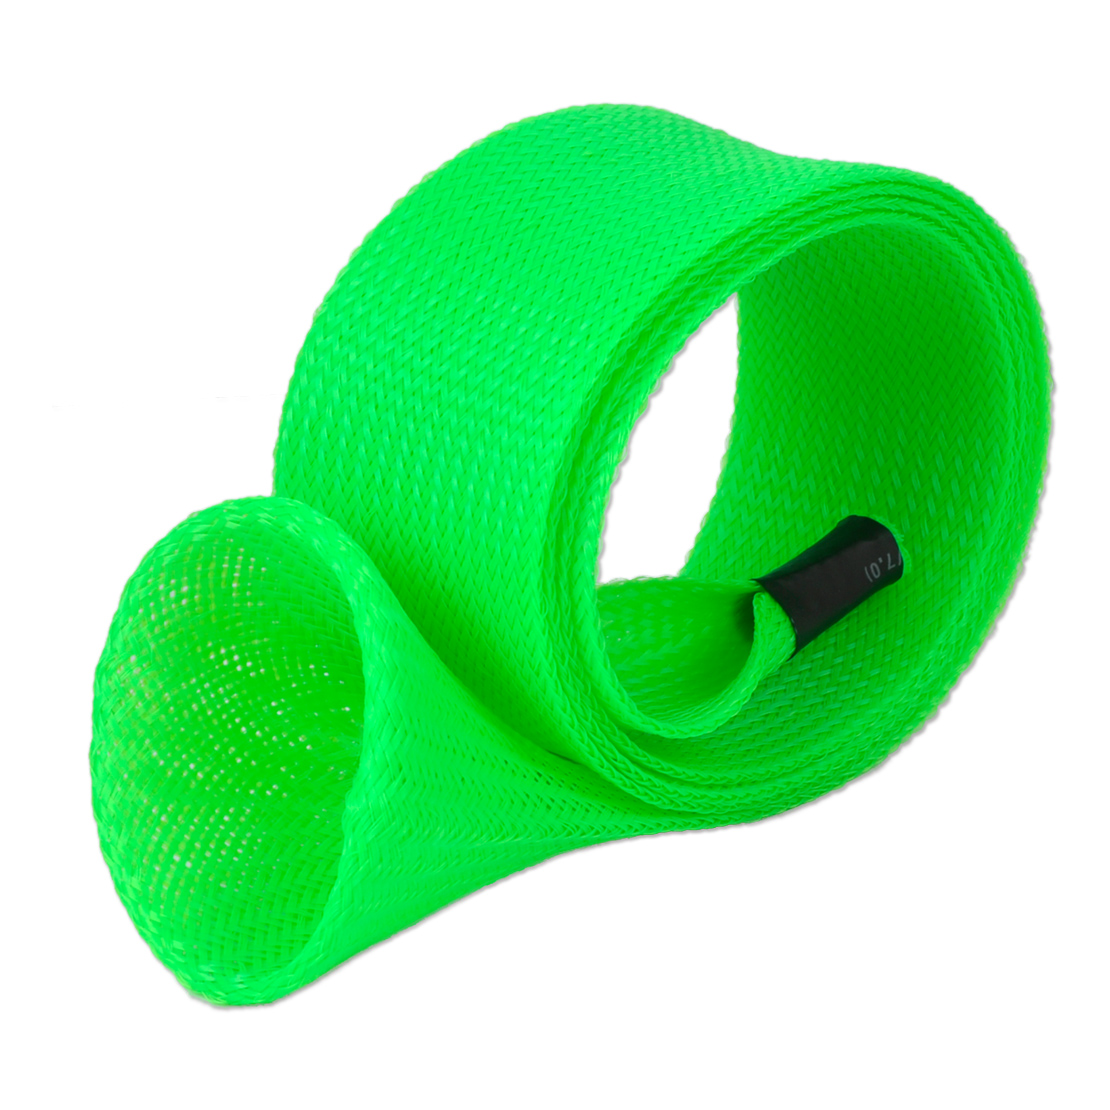 Diy skin spining fishing rod braided cable sleeve pole for Fishing pole sleeves